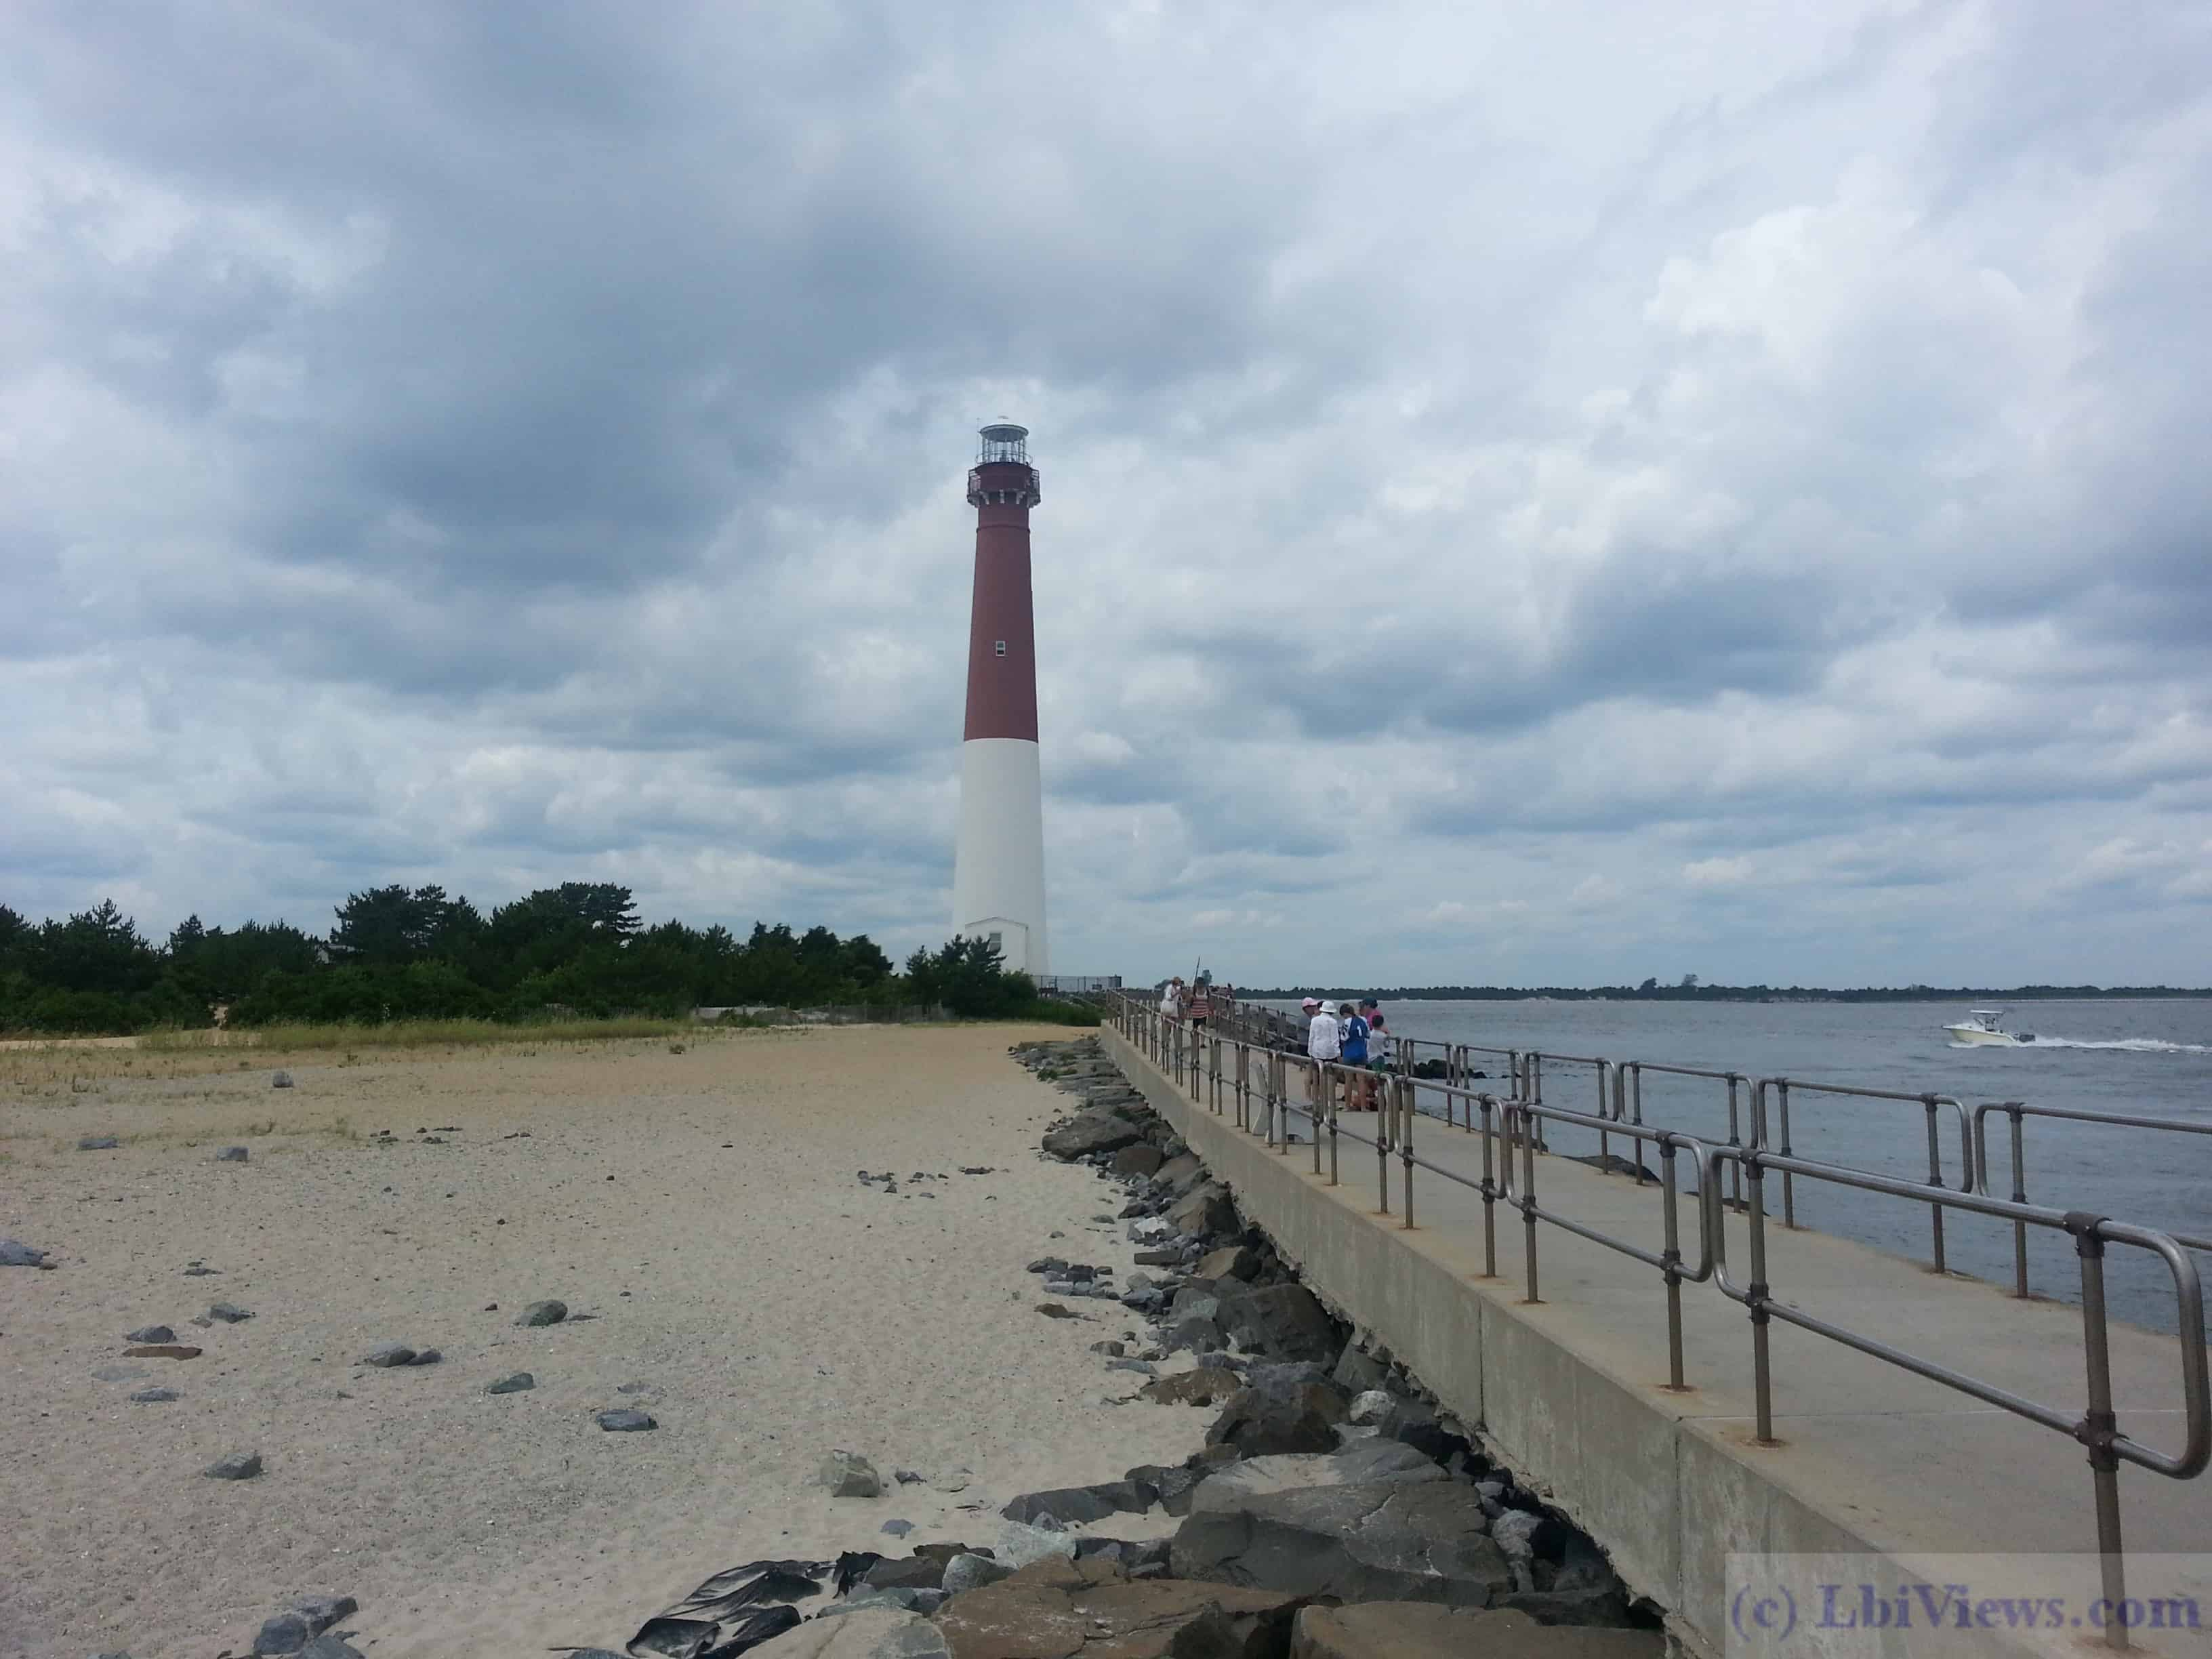 Barnegat Lighthouse from the jetty walkway